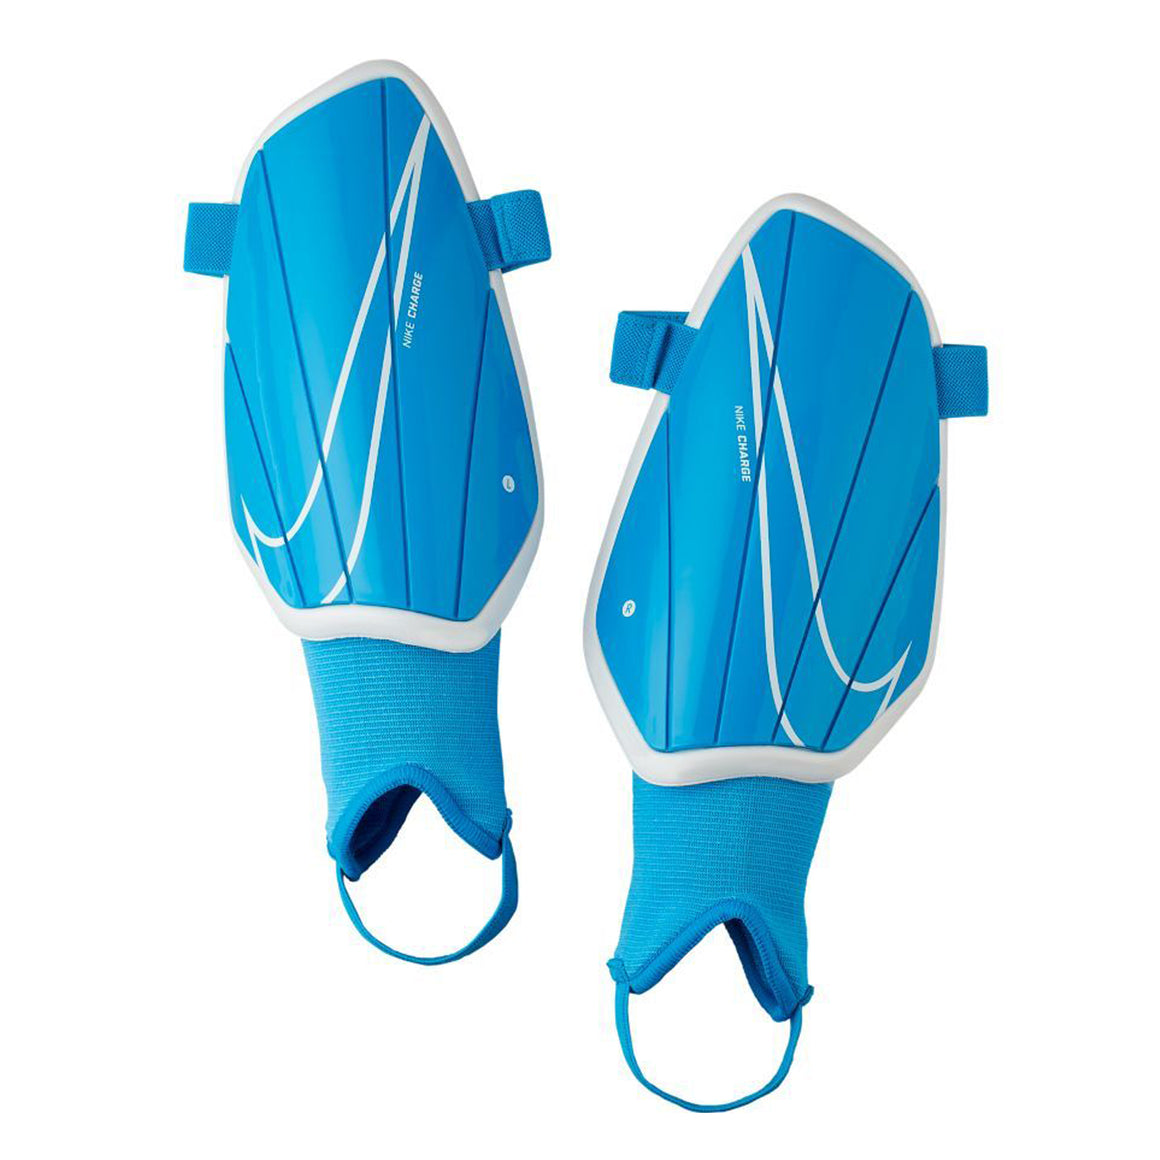 Charge Football Shinguards in Blue & White